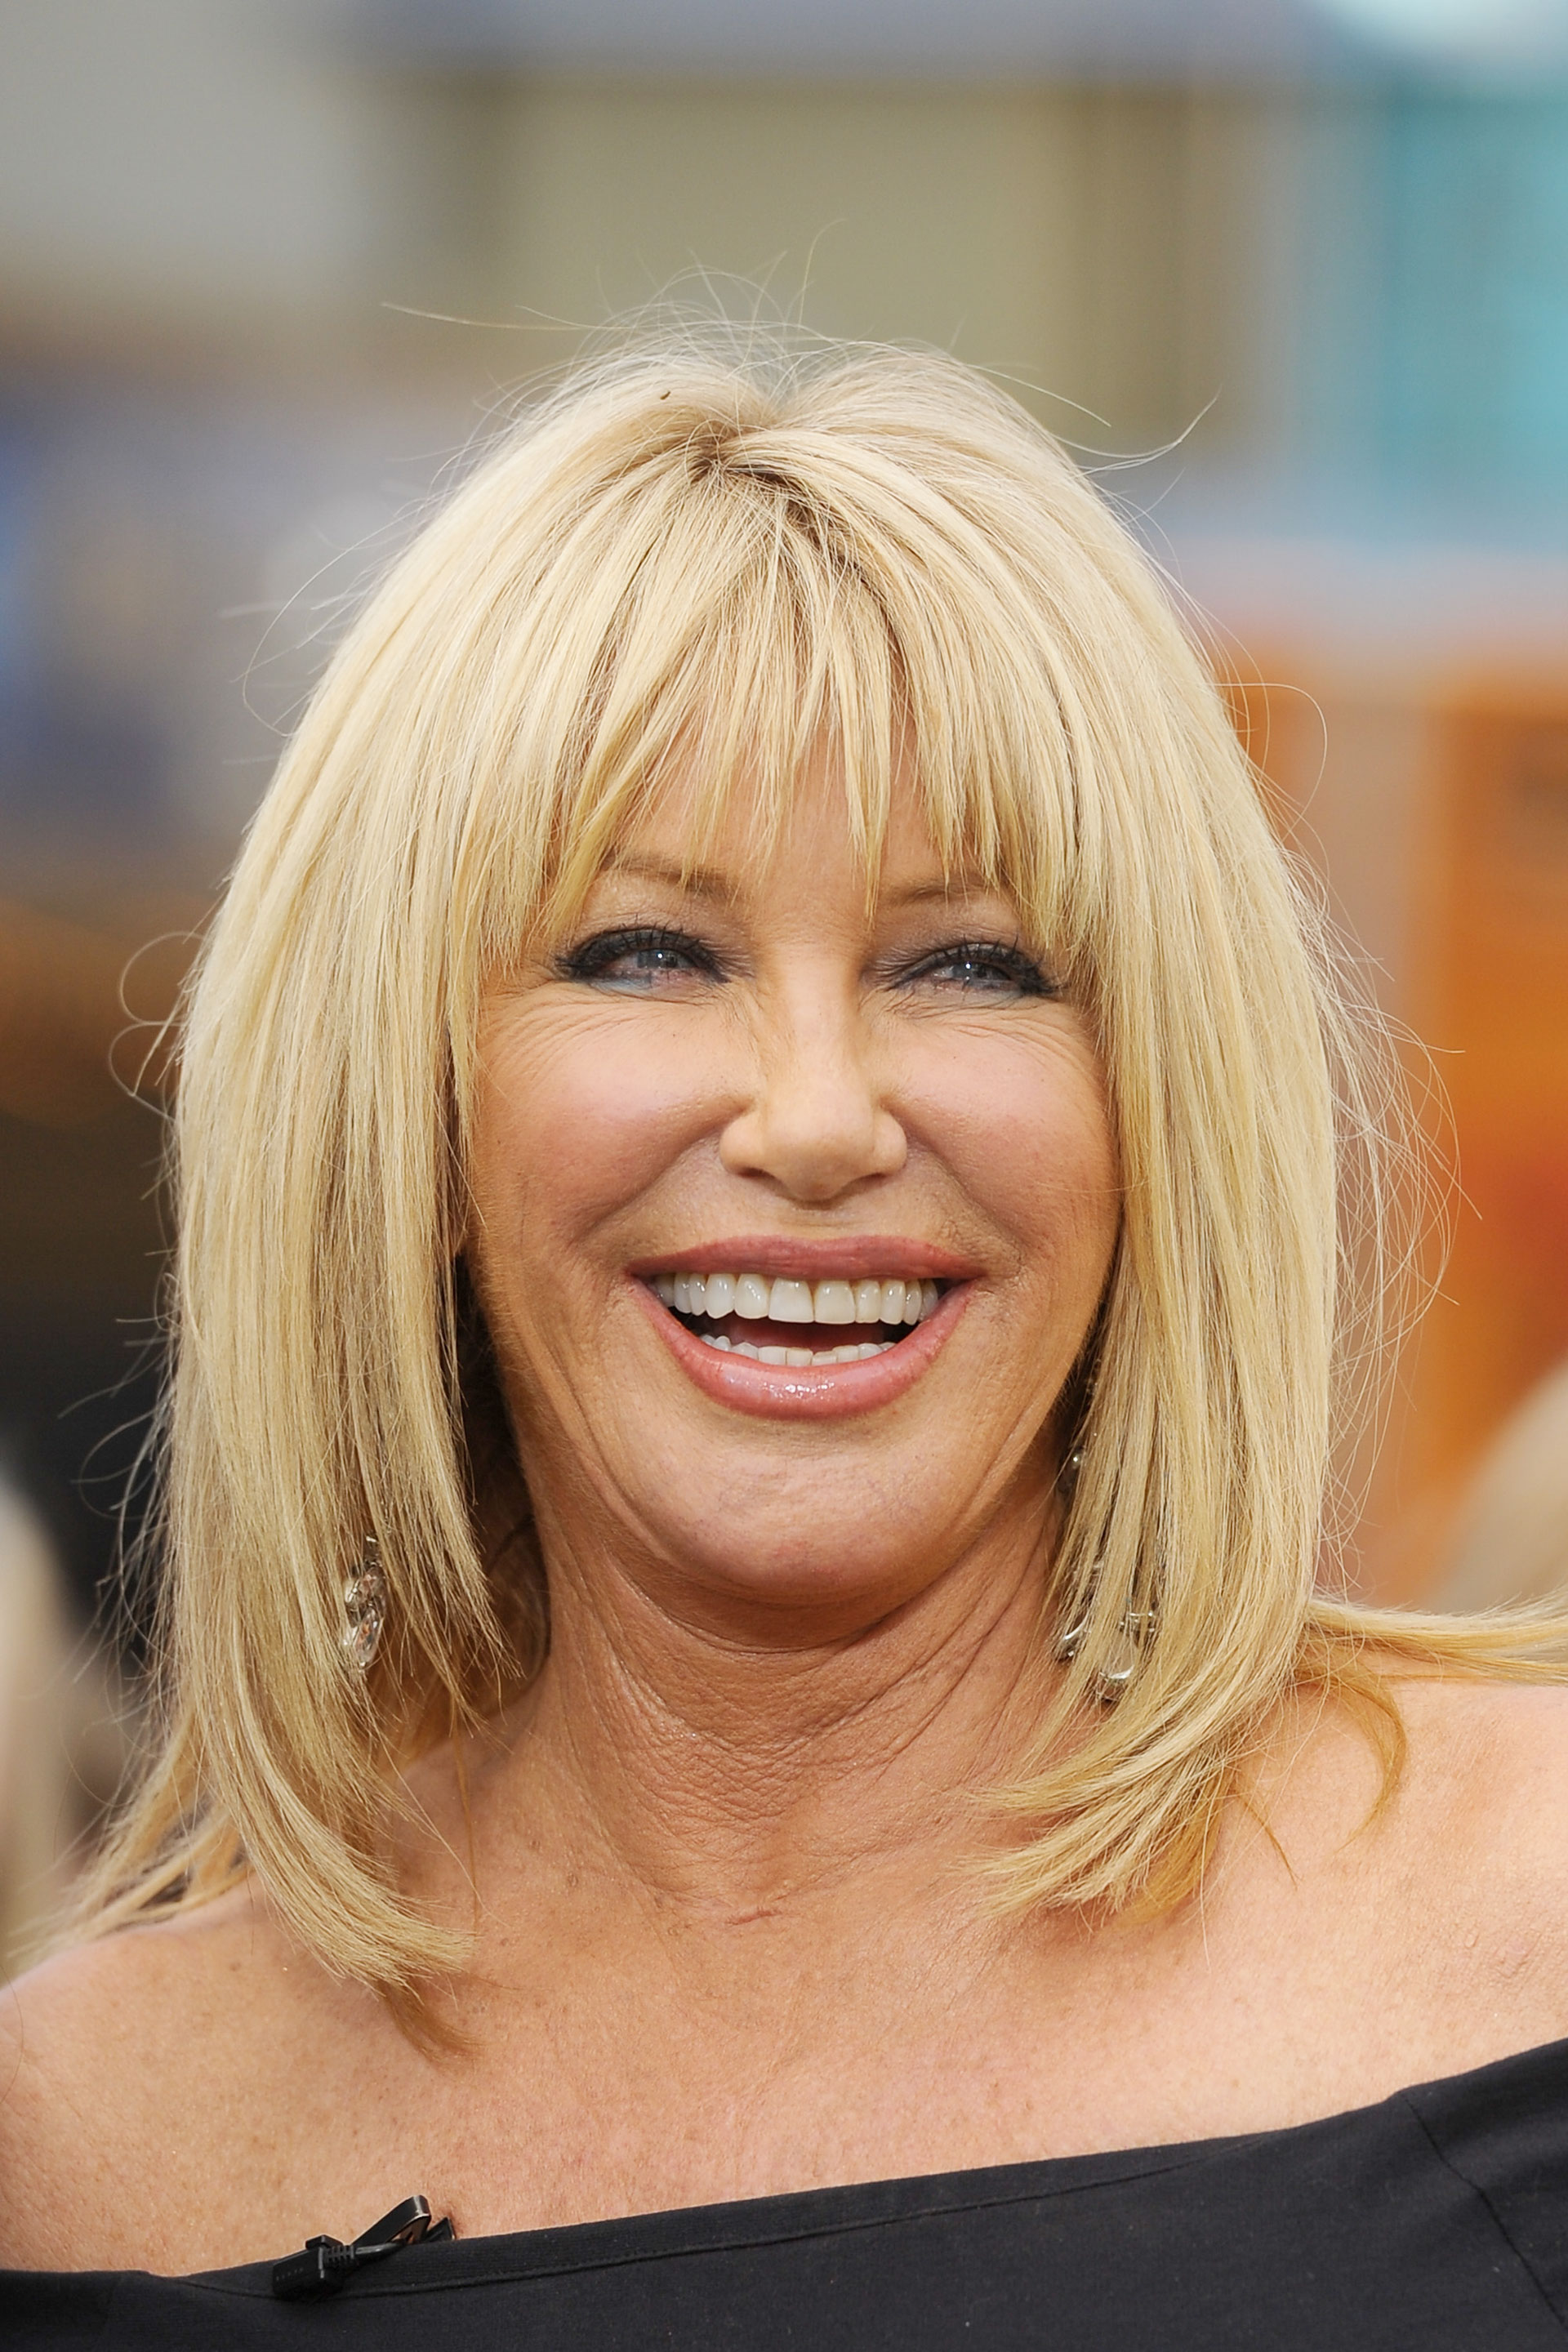 Swell Best Hairstyles For Women Over 50 Celebrity Haircuts Over 50 Short Hairstyles Gunalazisus